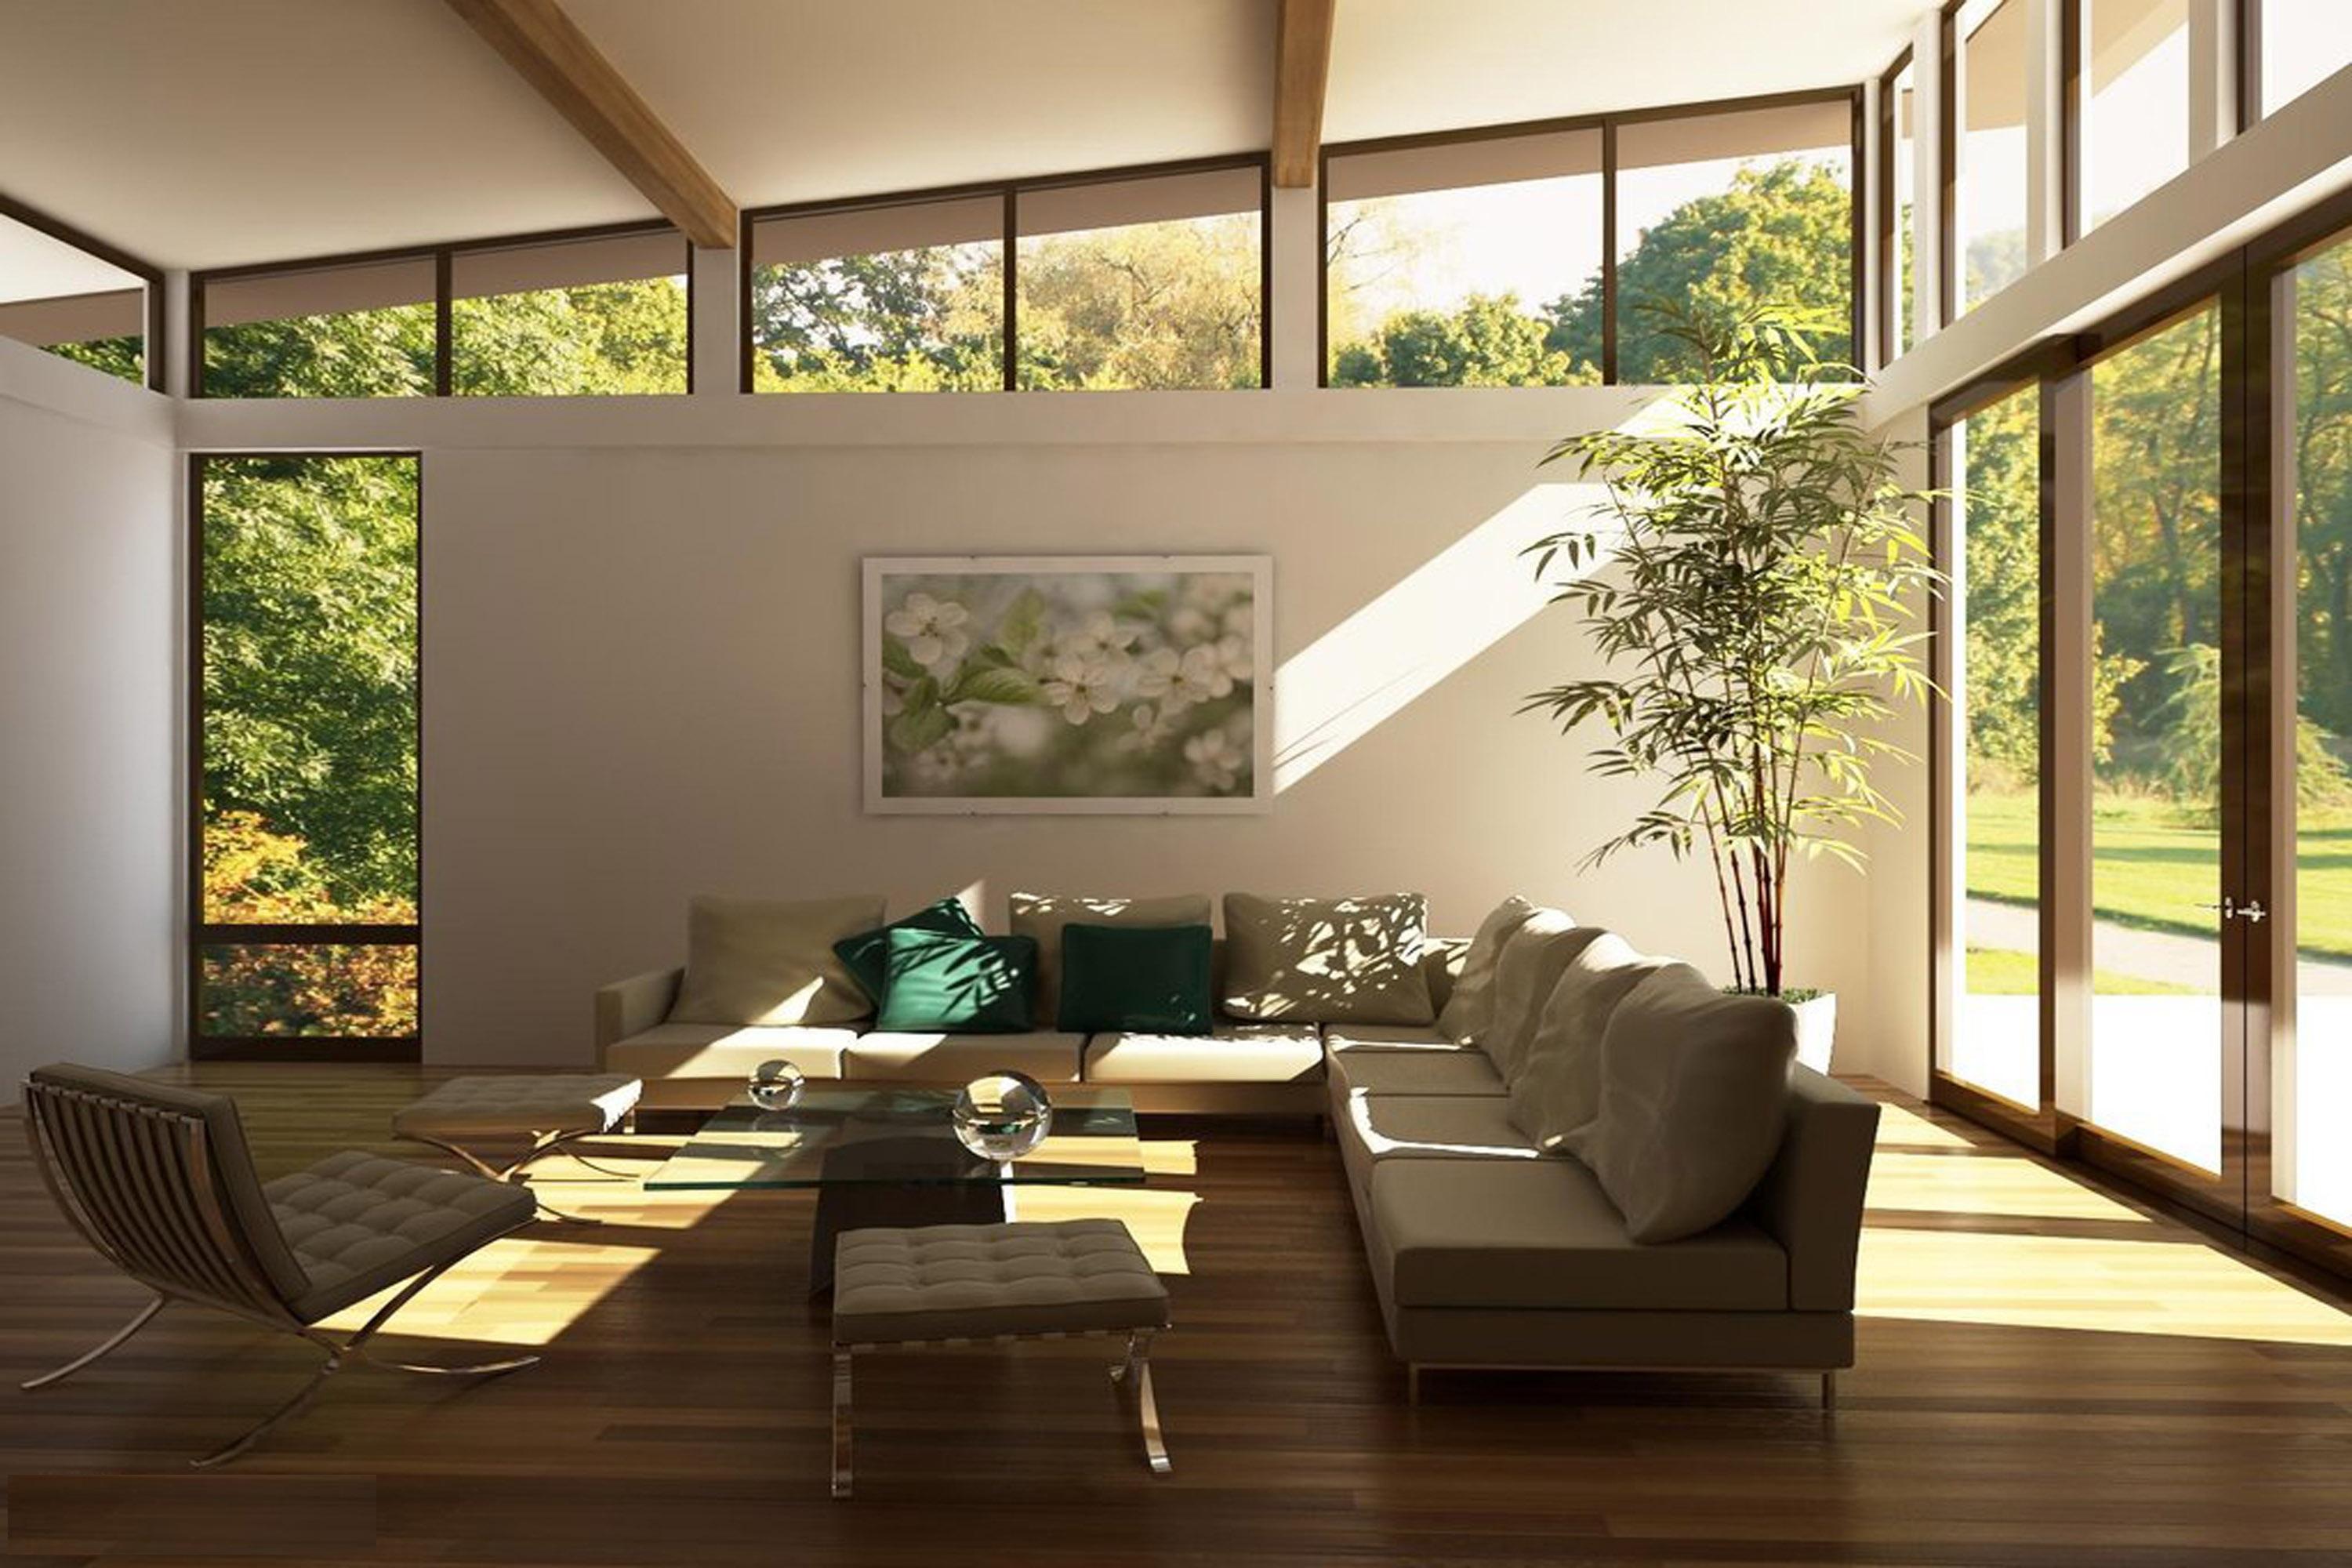 Contemporary style furniture characteristics - Mixing And Matching Are Frequently A Characteristic Of Modern Day Style Living Room Furniture